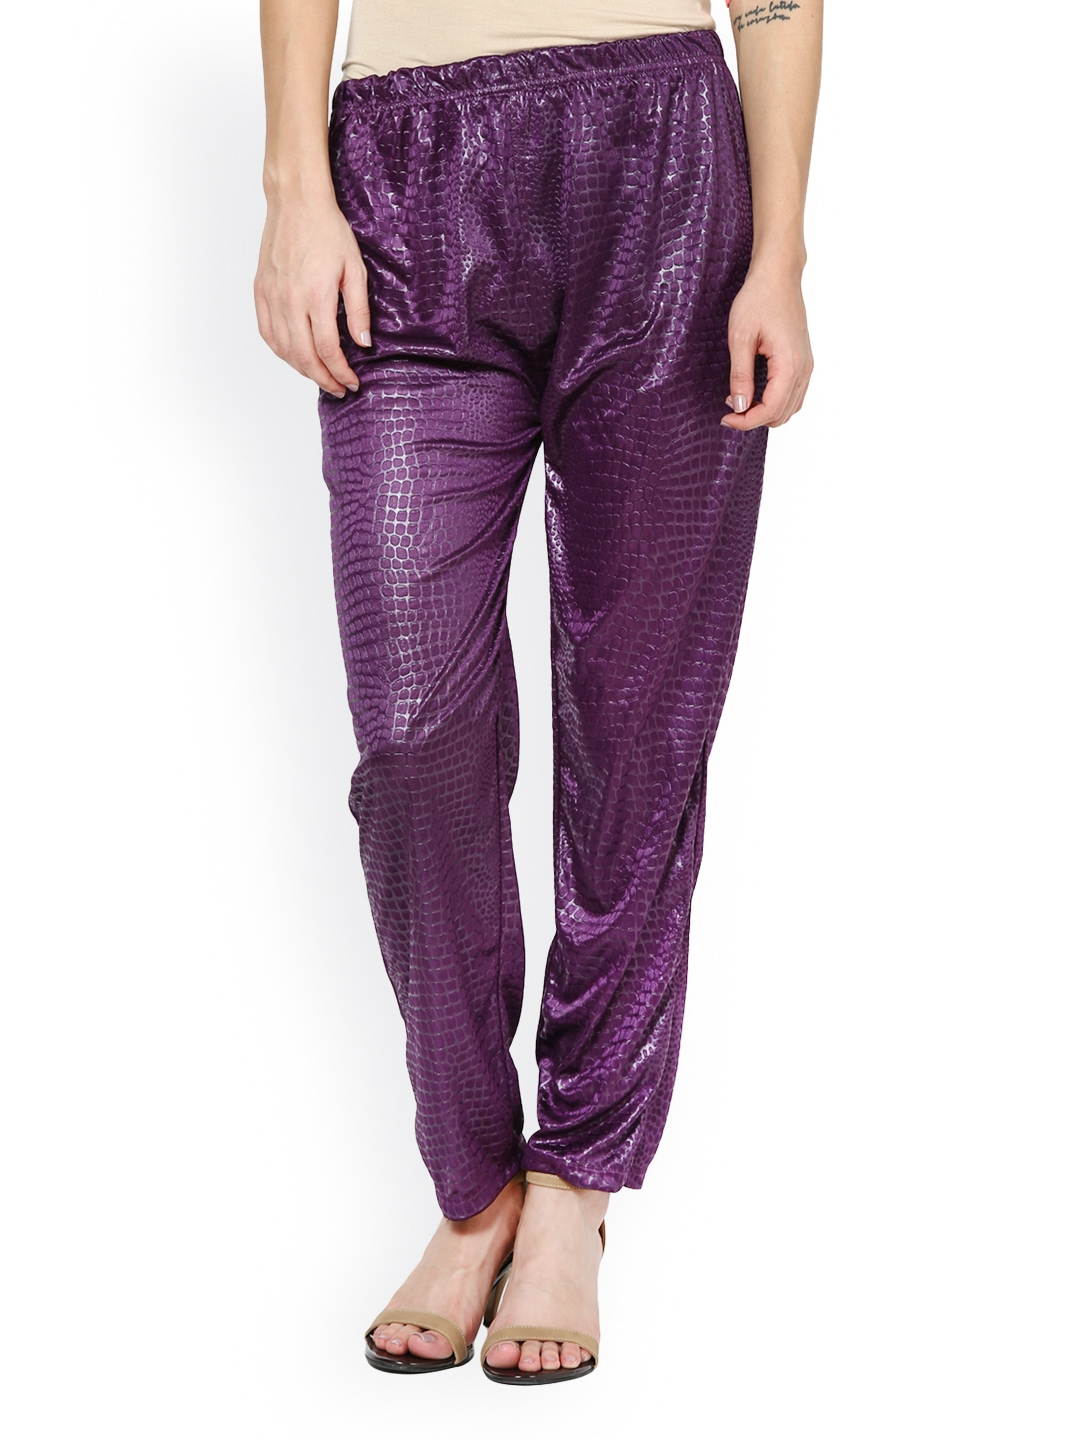 Brilliant Theory Adbelle K Pant In Burgundy